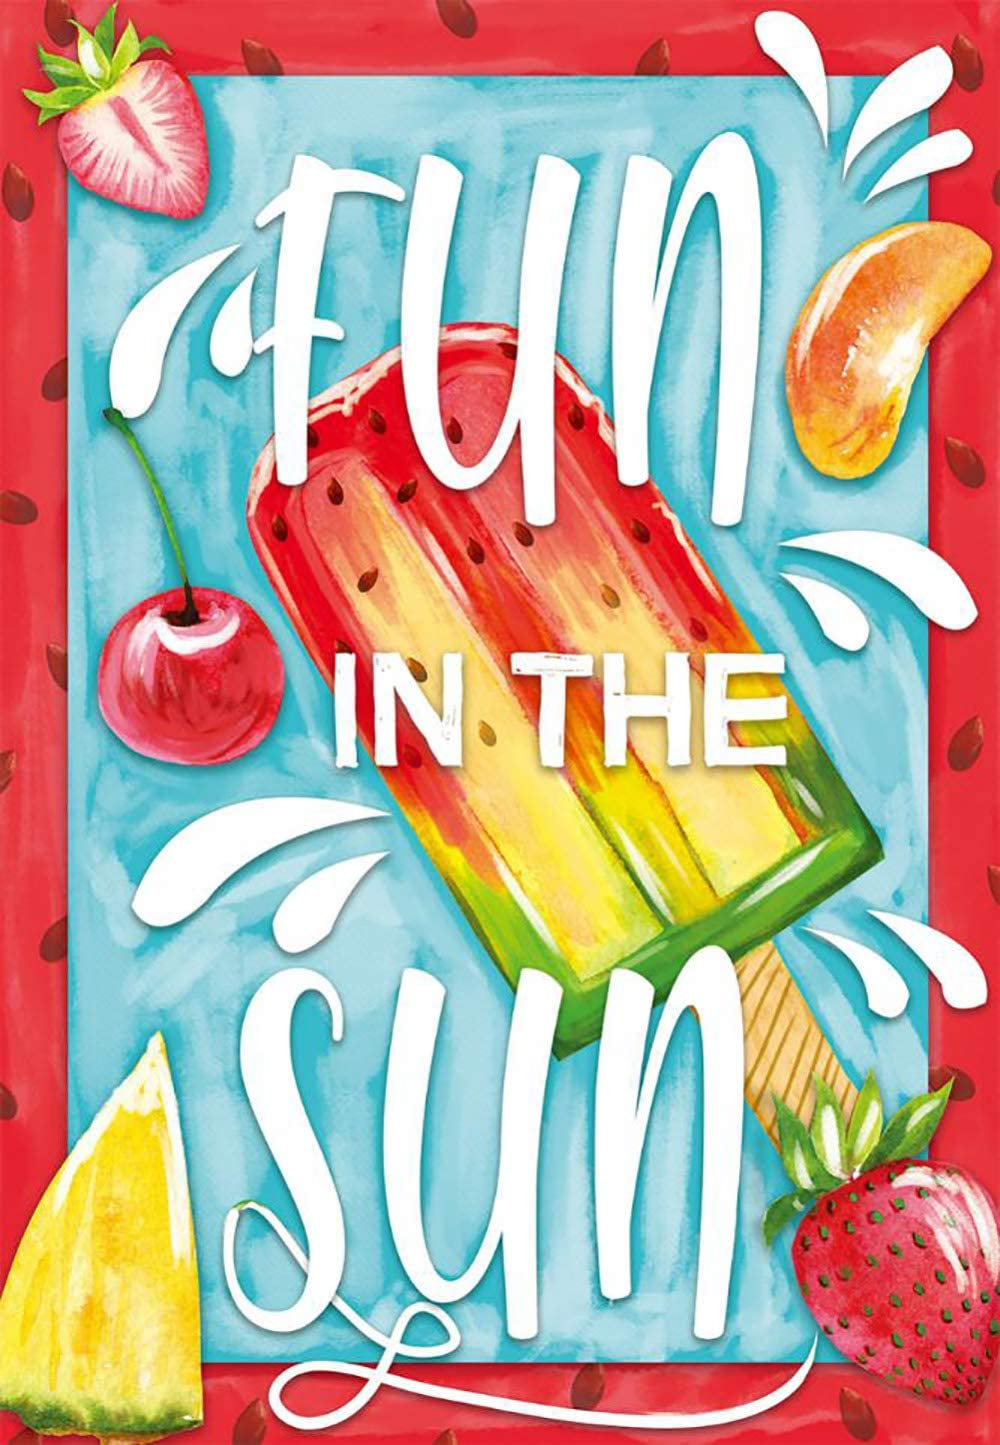 Texupday Fun in The Sun Watermelon Ice Cream Popsicles with Fruits Decor House Flag Summer Outdoor Yard Flag 28